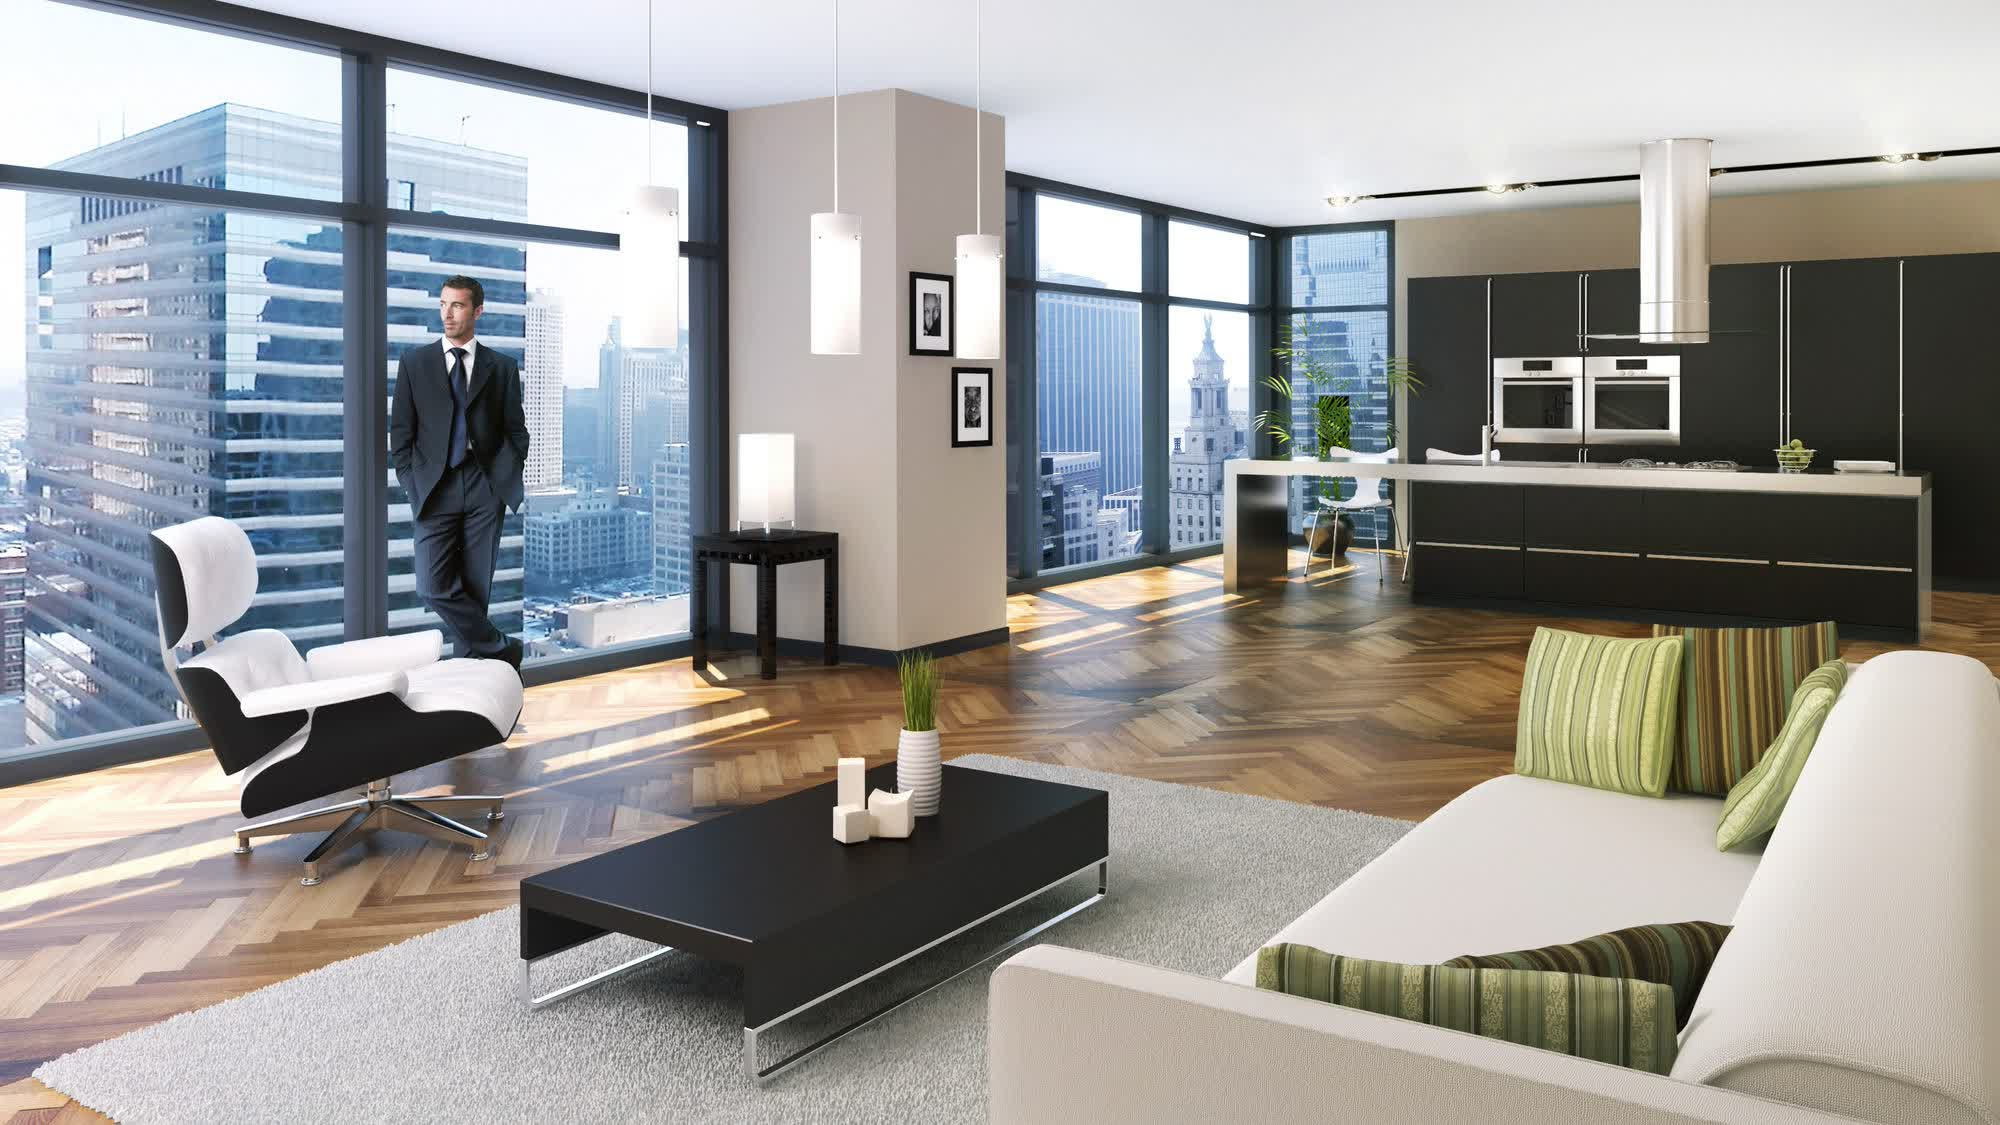 An Inspiring Chicago Interior Design Firms With A Great